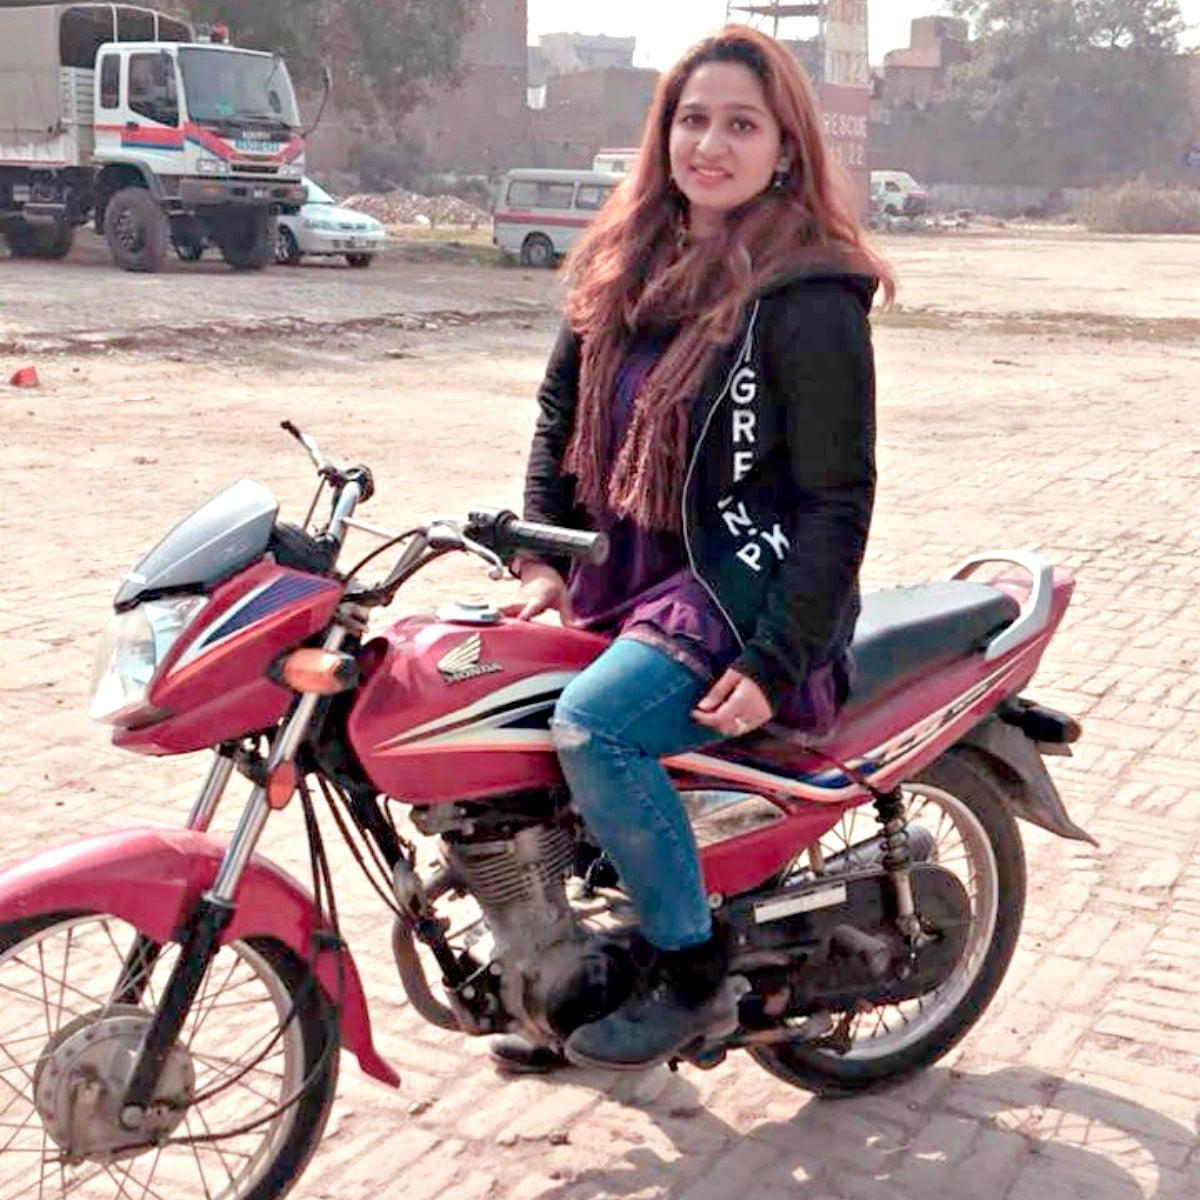 Graphic designer Nimra Saleem is an avid biker who believes that harassment of female commuters occurs regardless of the type of vehicle they drive